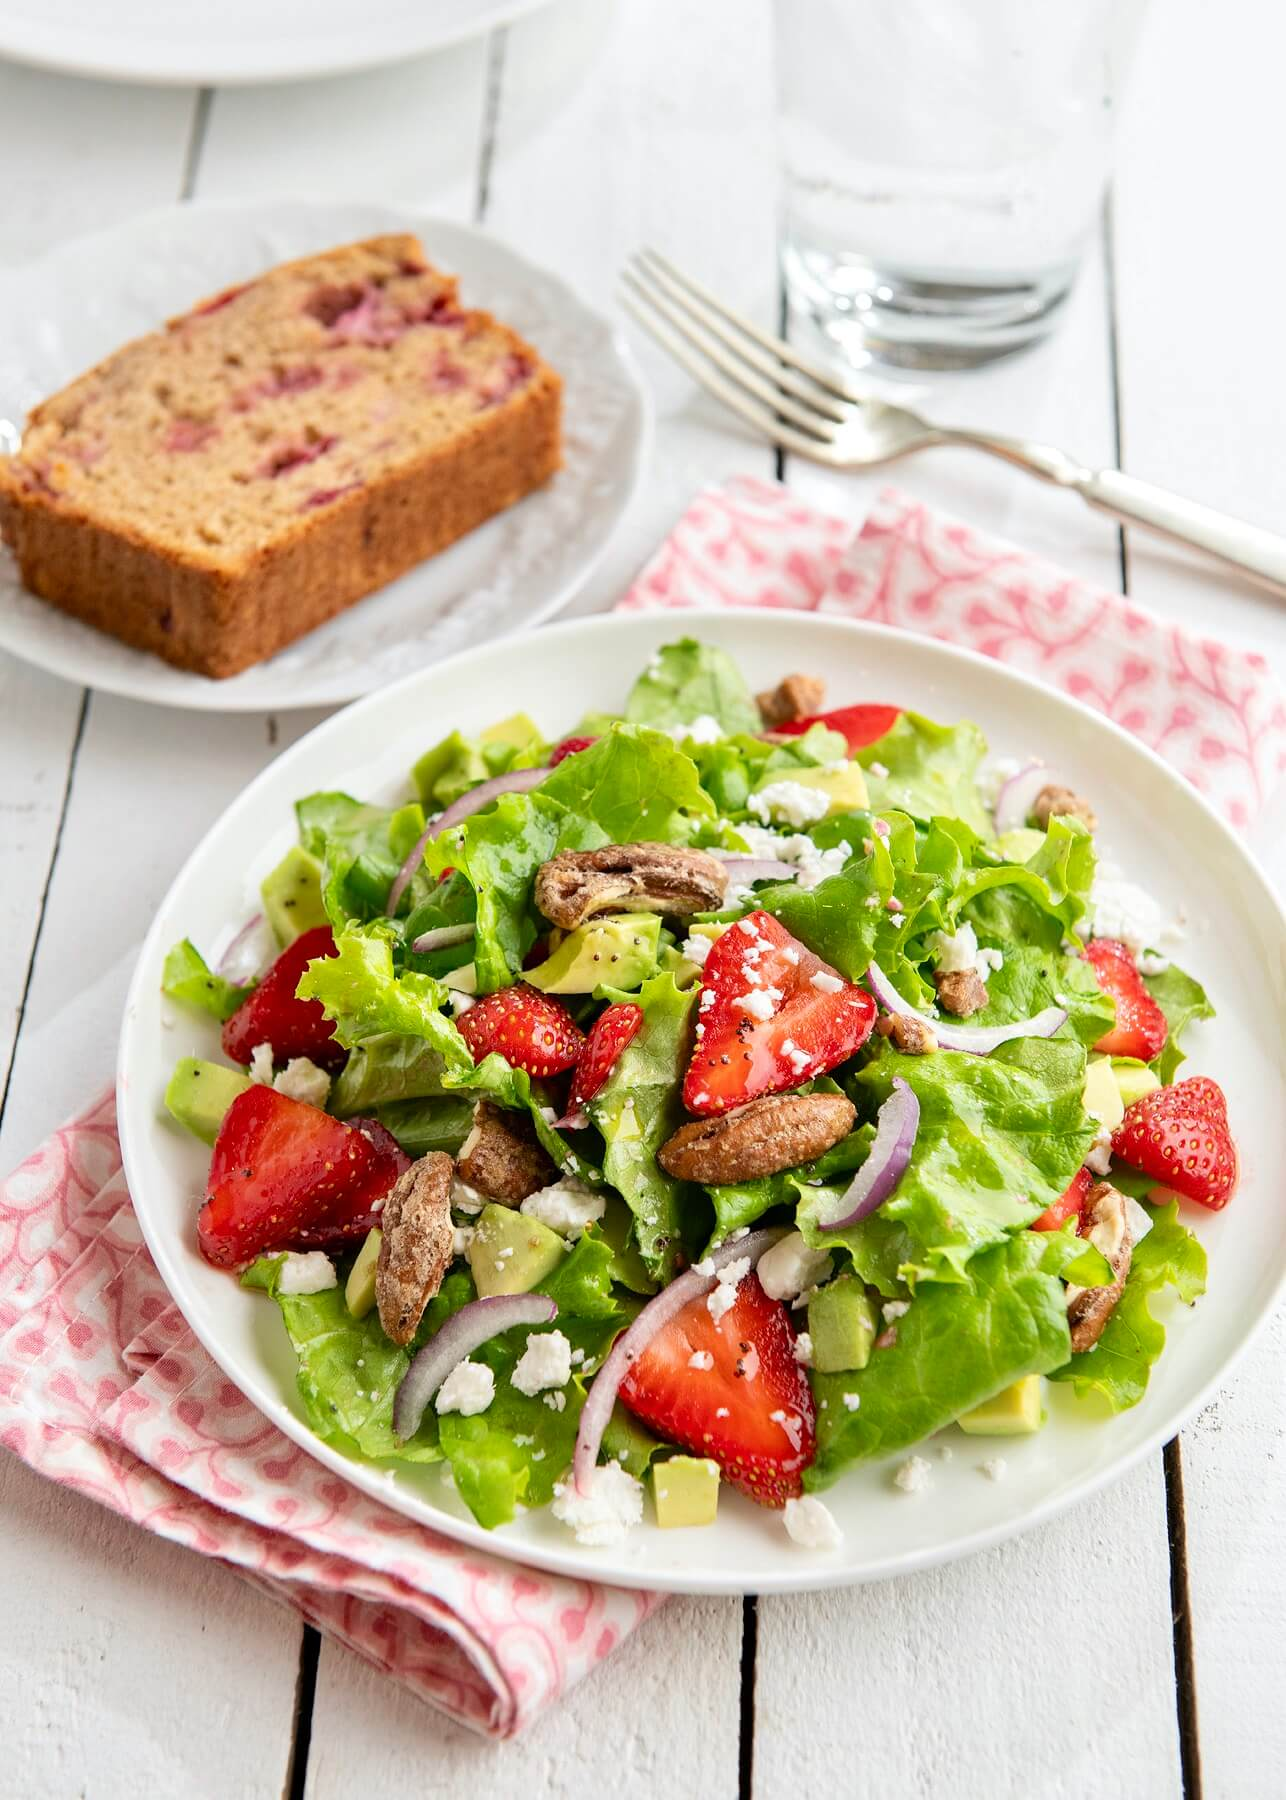 A light drizzle of this sweet and tangy vinaigrette makes a classic strawberry salad shine. Eating your greens never tasted so good!